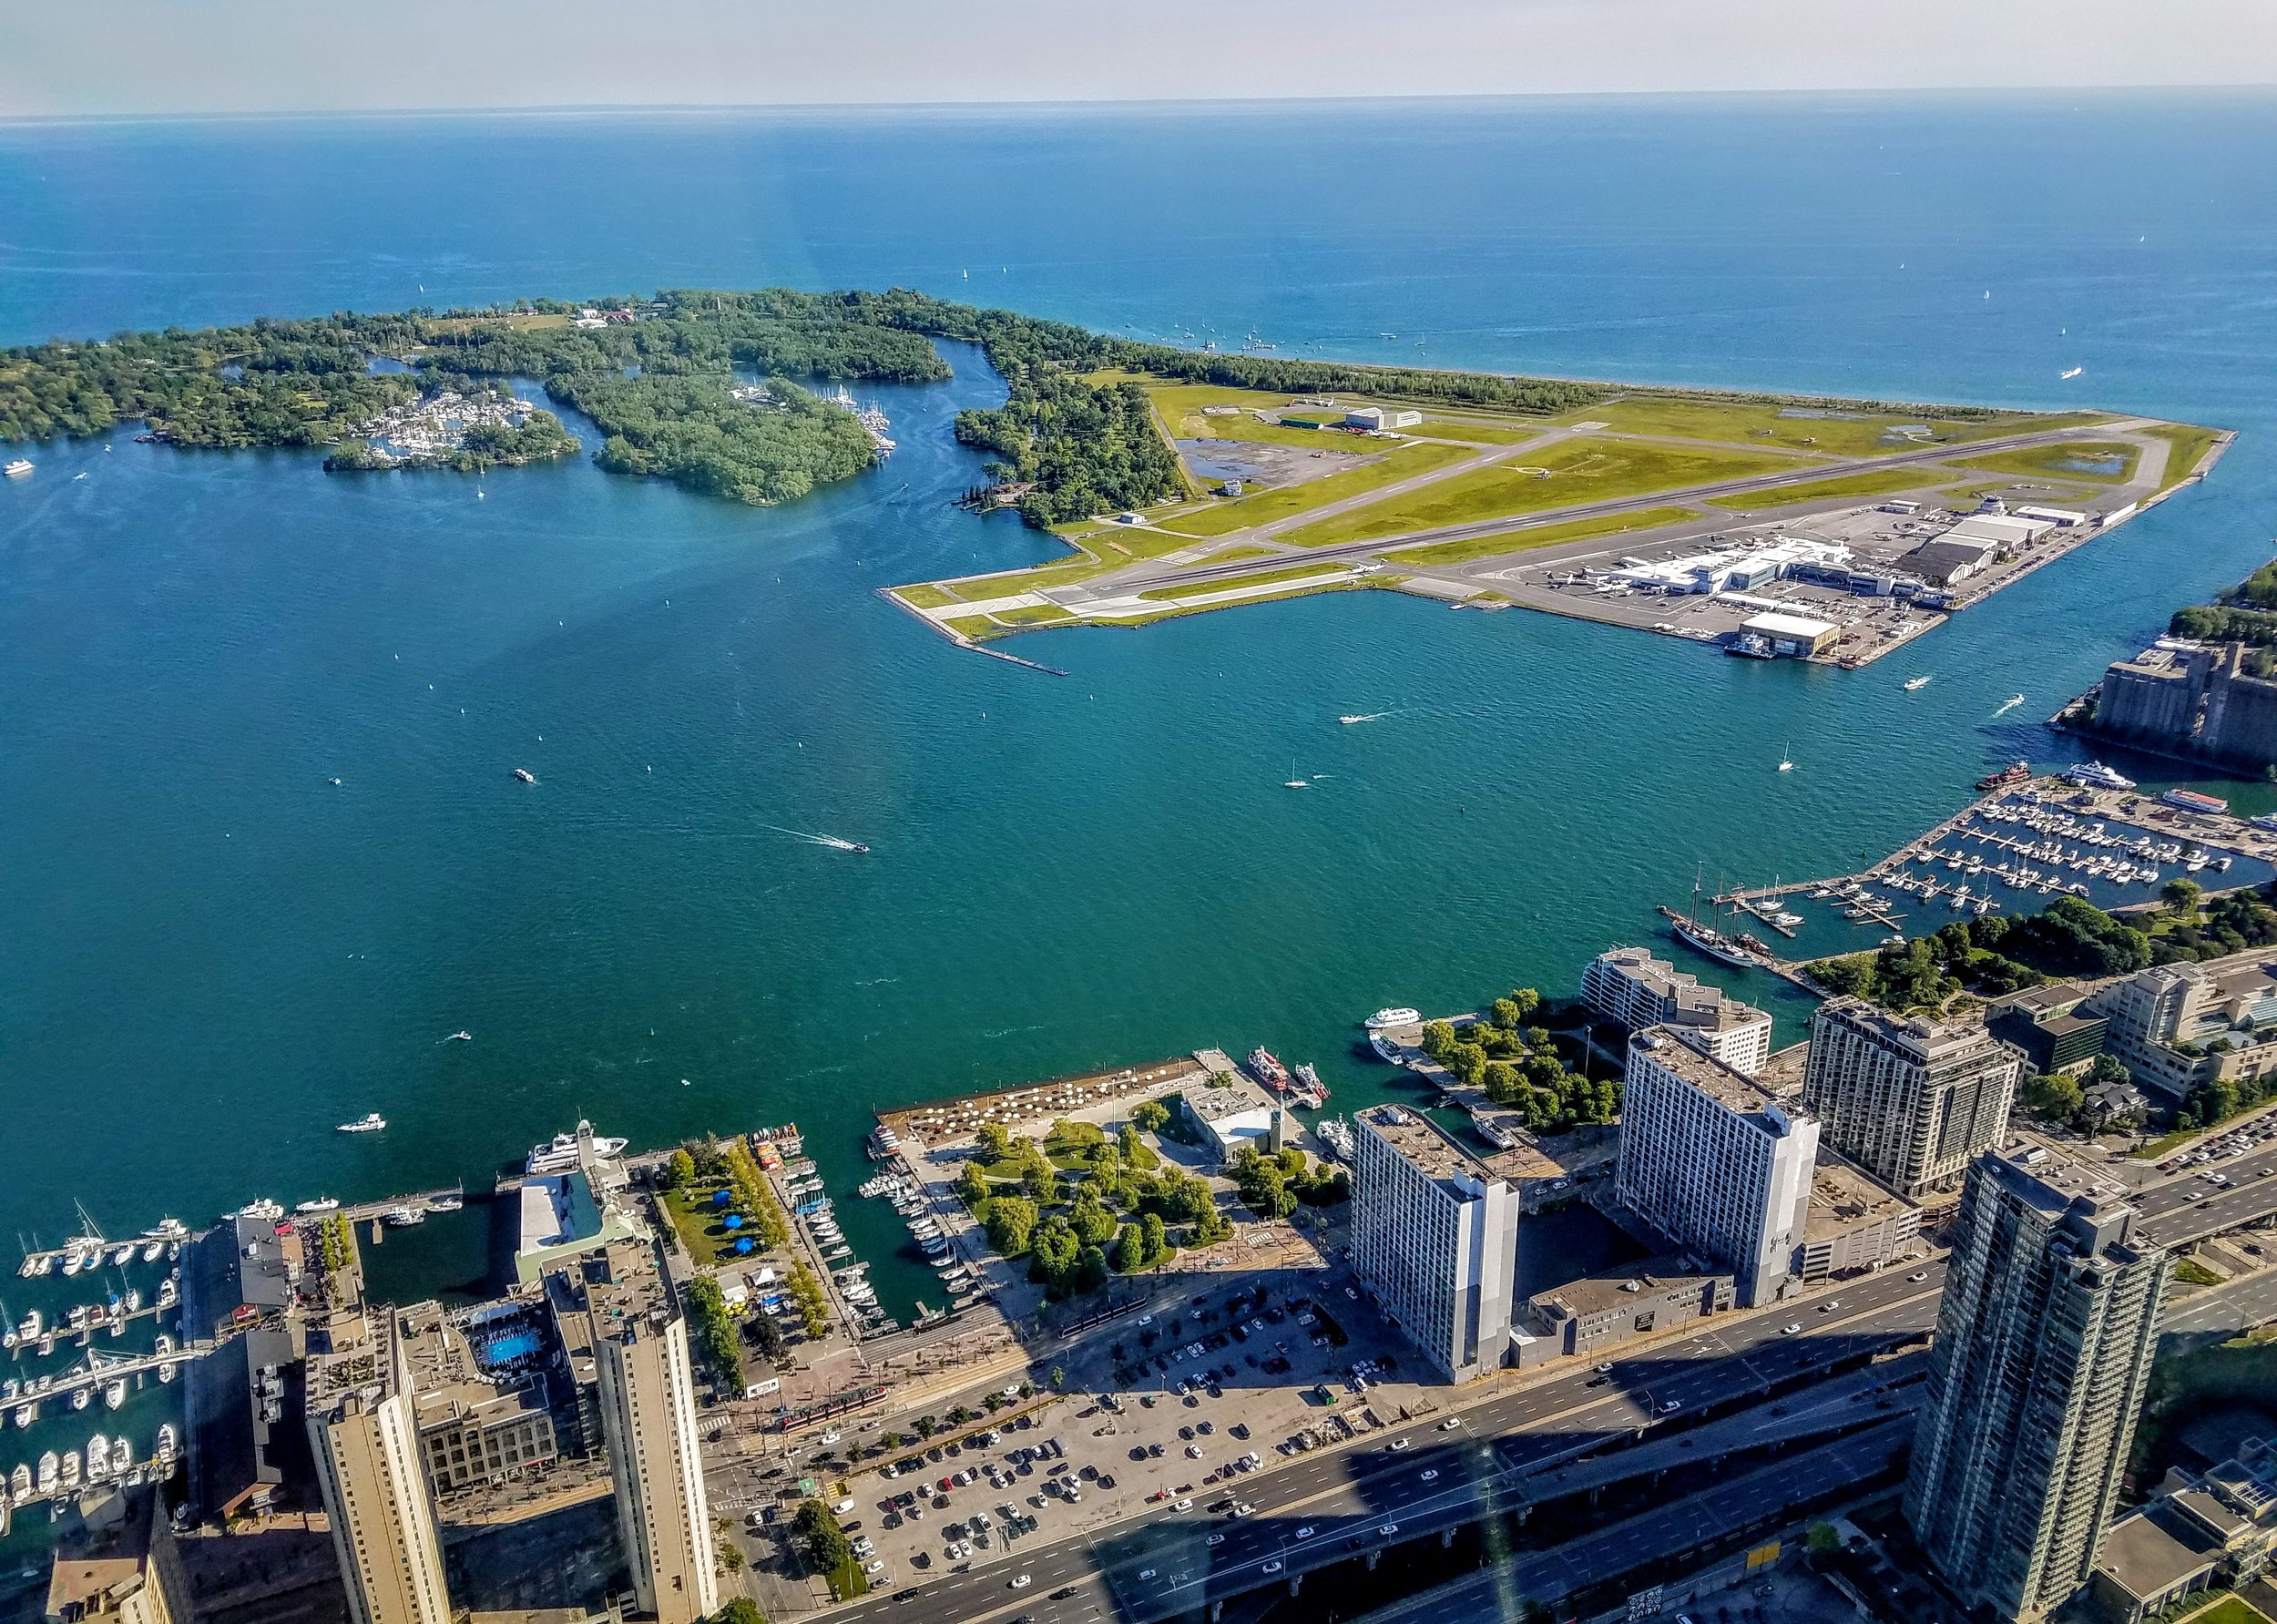 The local airport and the channel we will use to exit Toronto